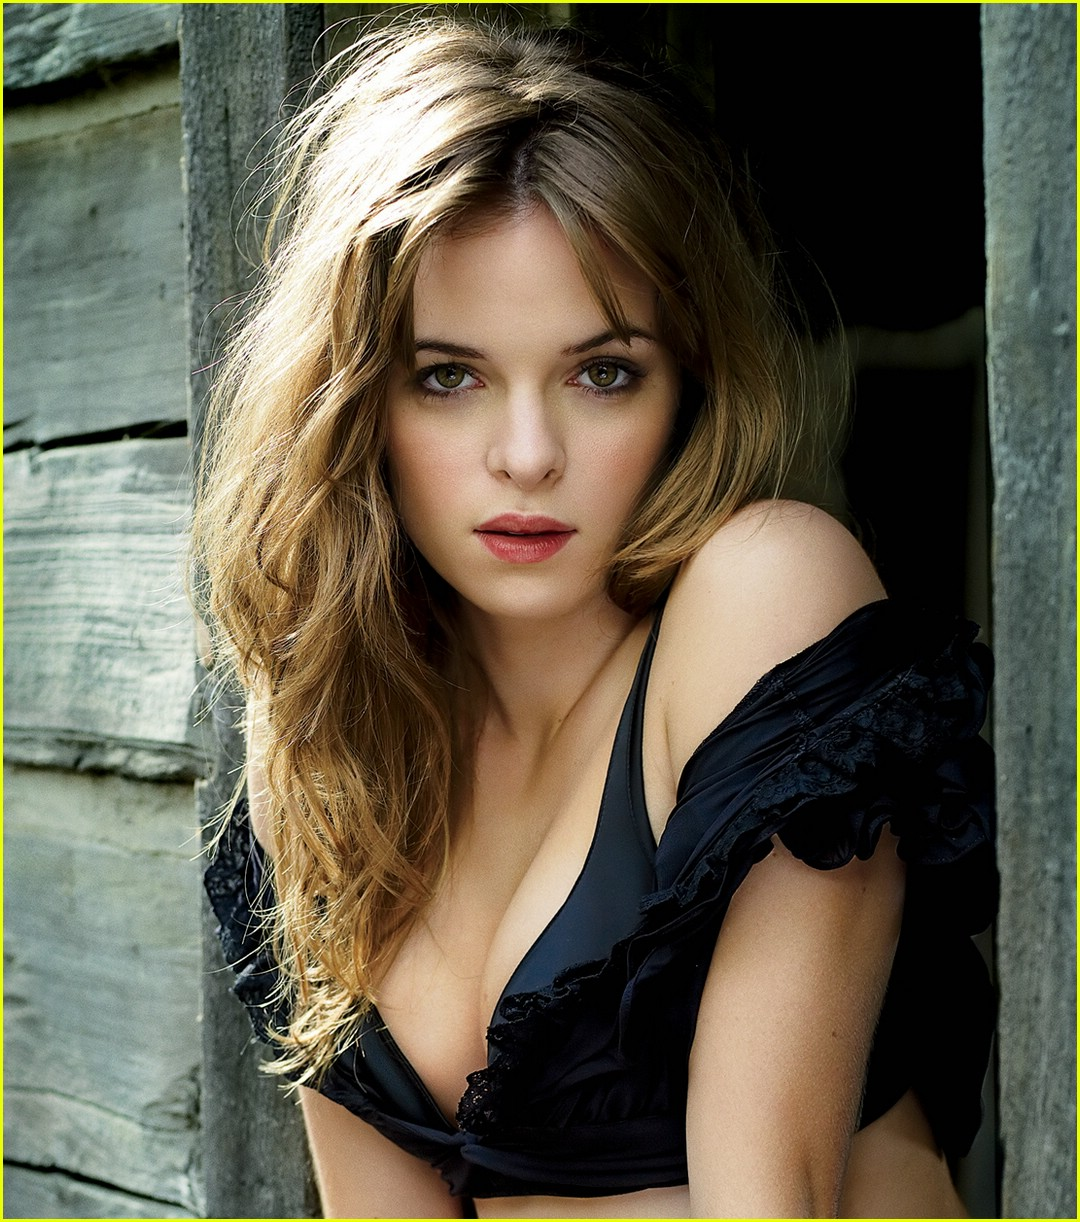 Danielle Panabaker Danielle Panabaker new picture